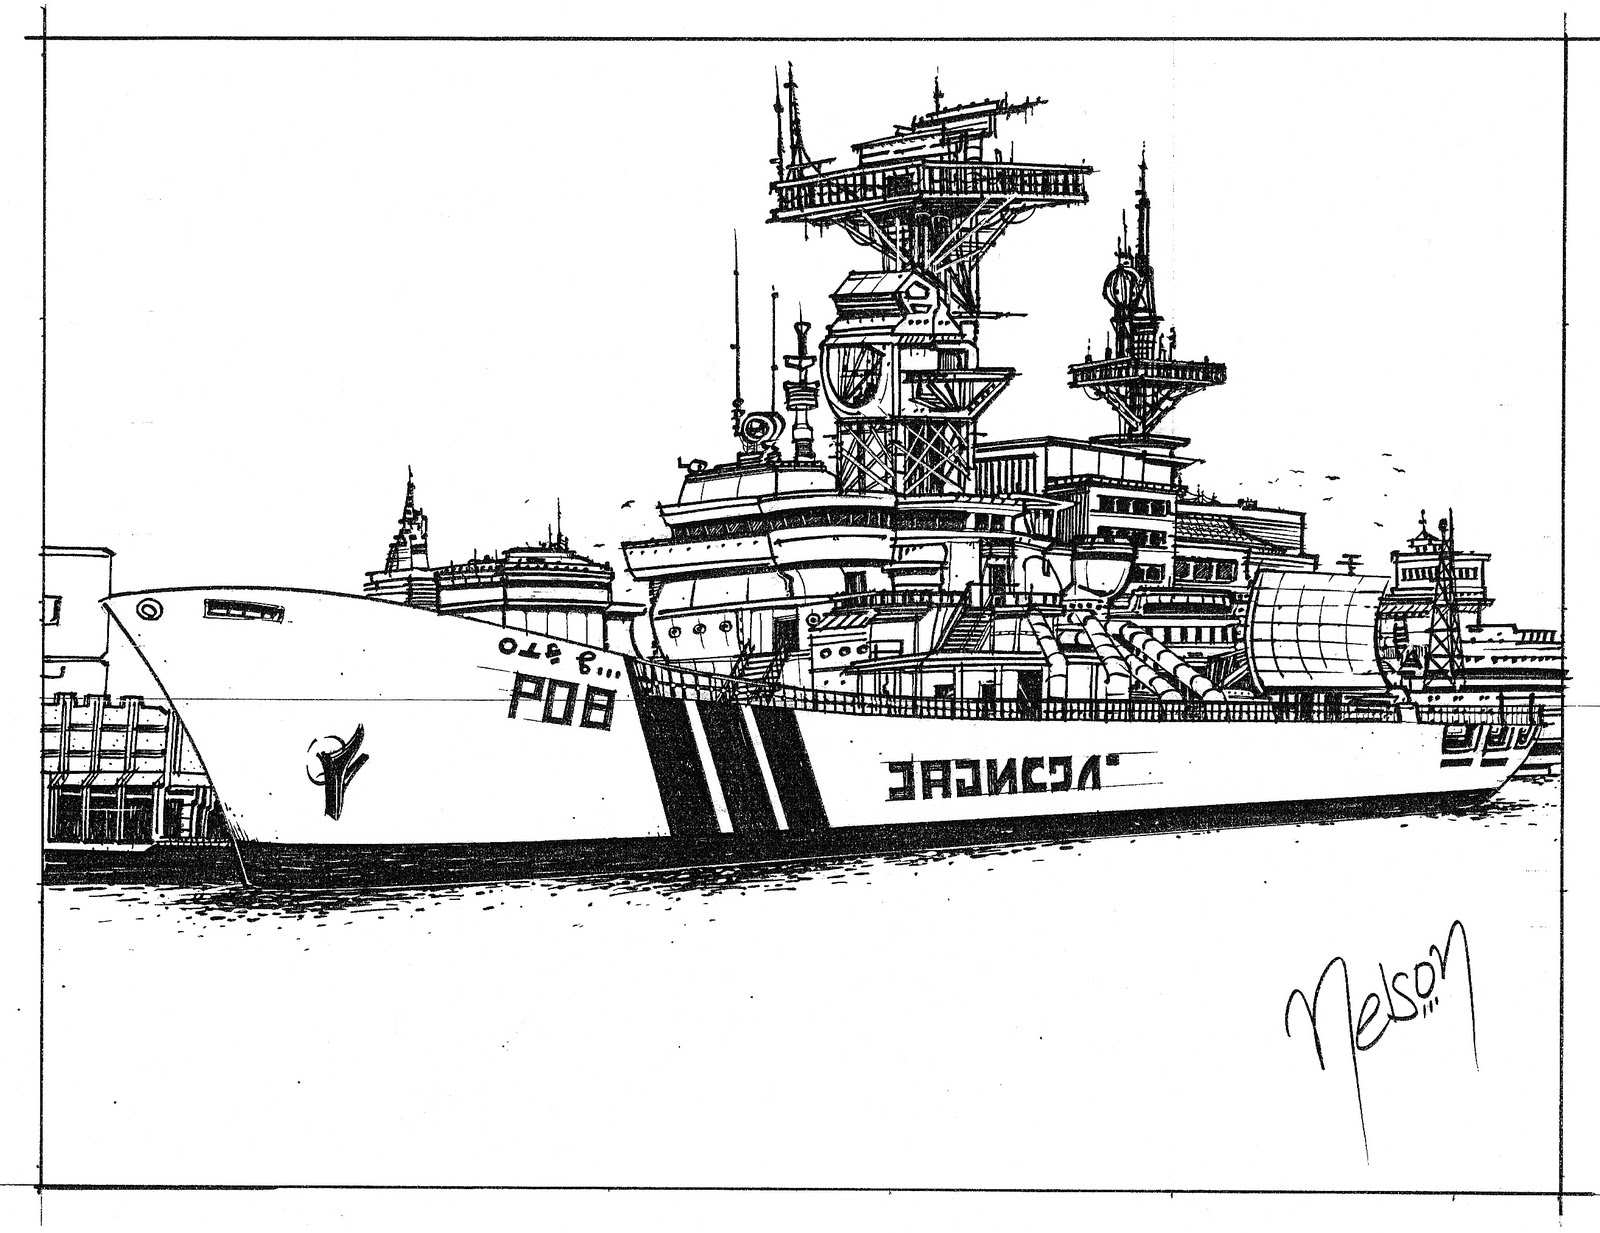 Navy ship coloring pages ~ Nelson's Art Portfolio 2010: December 2009